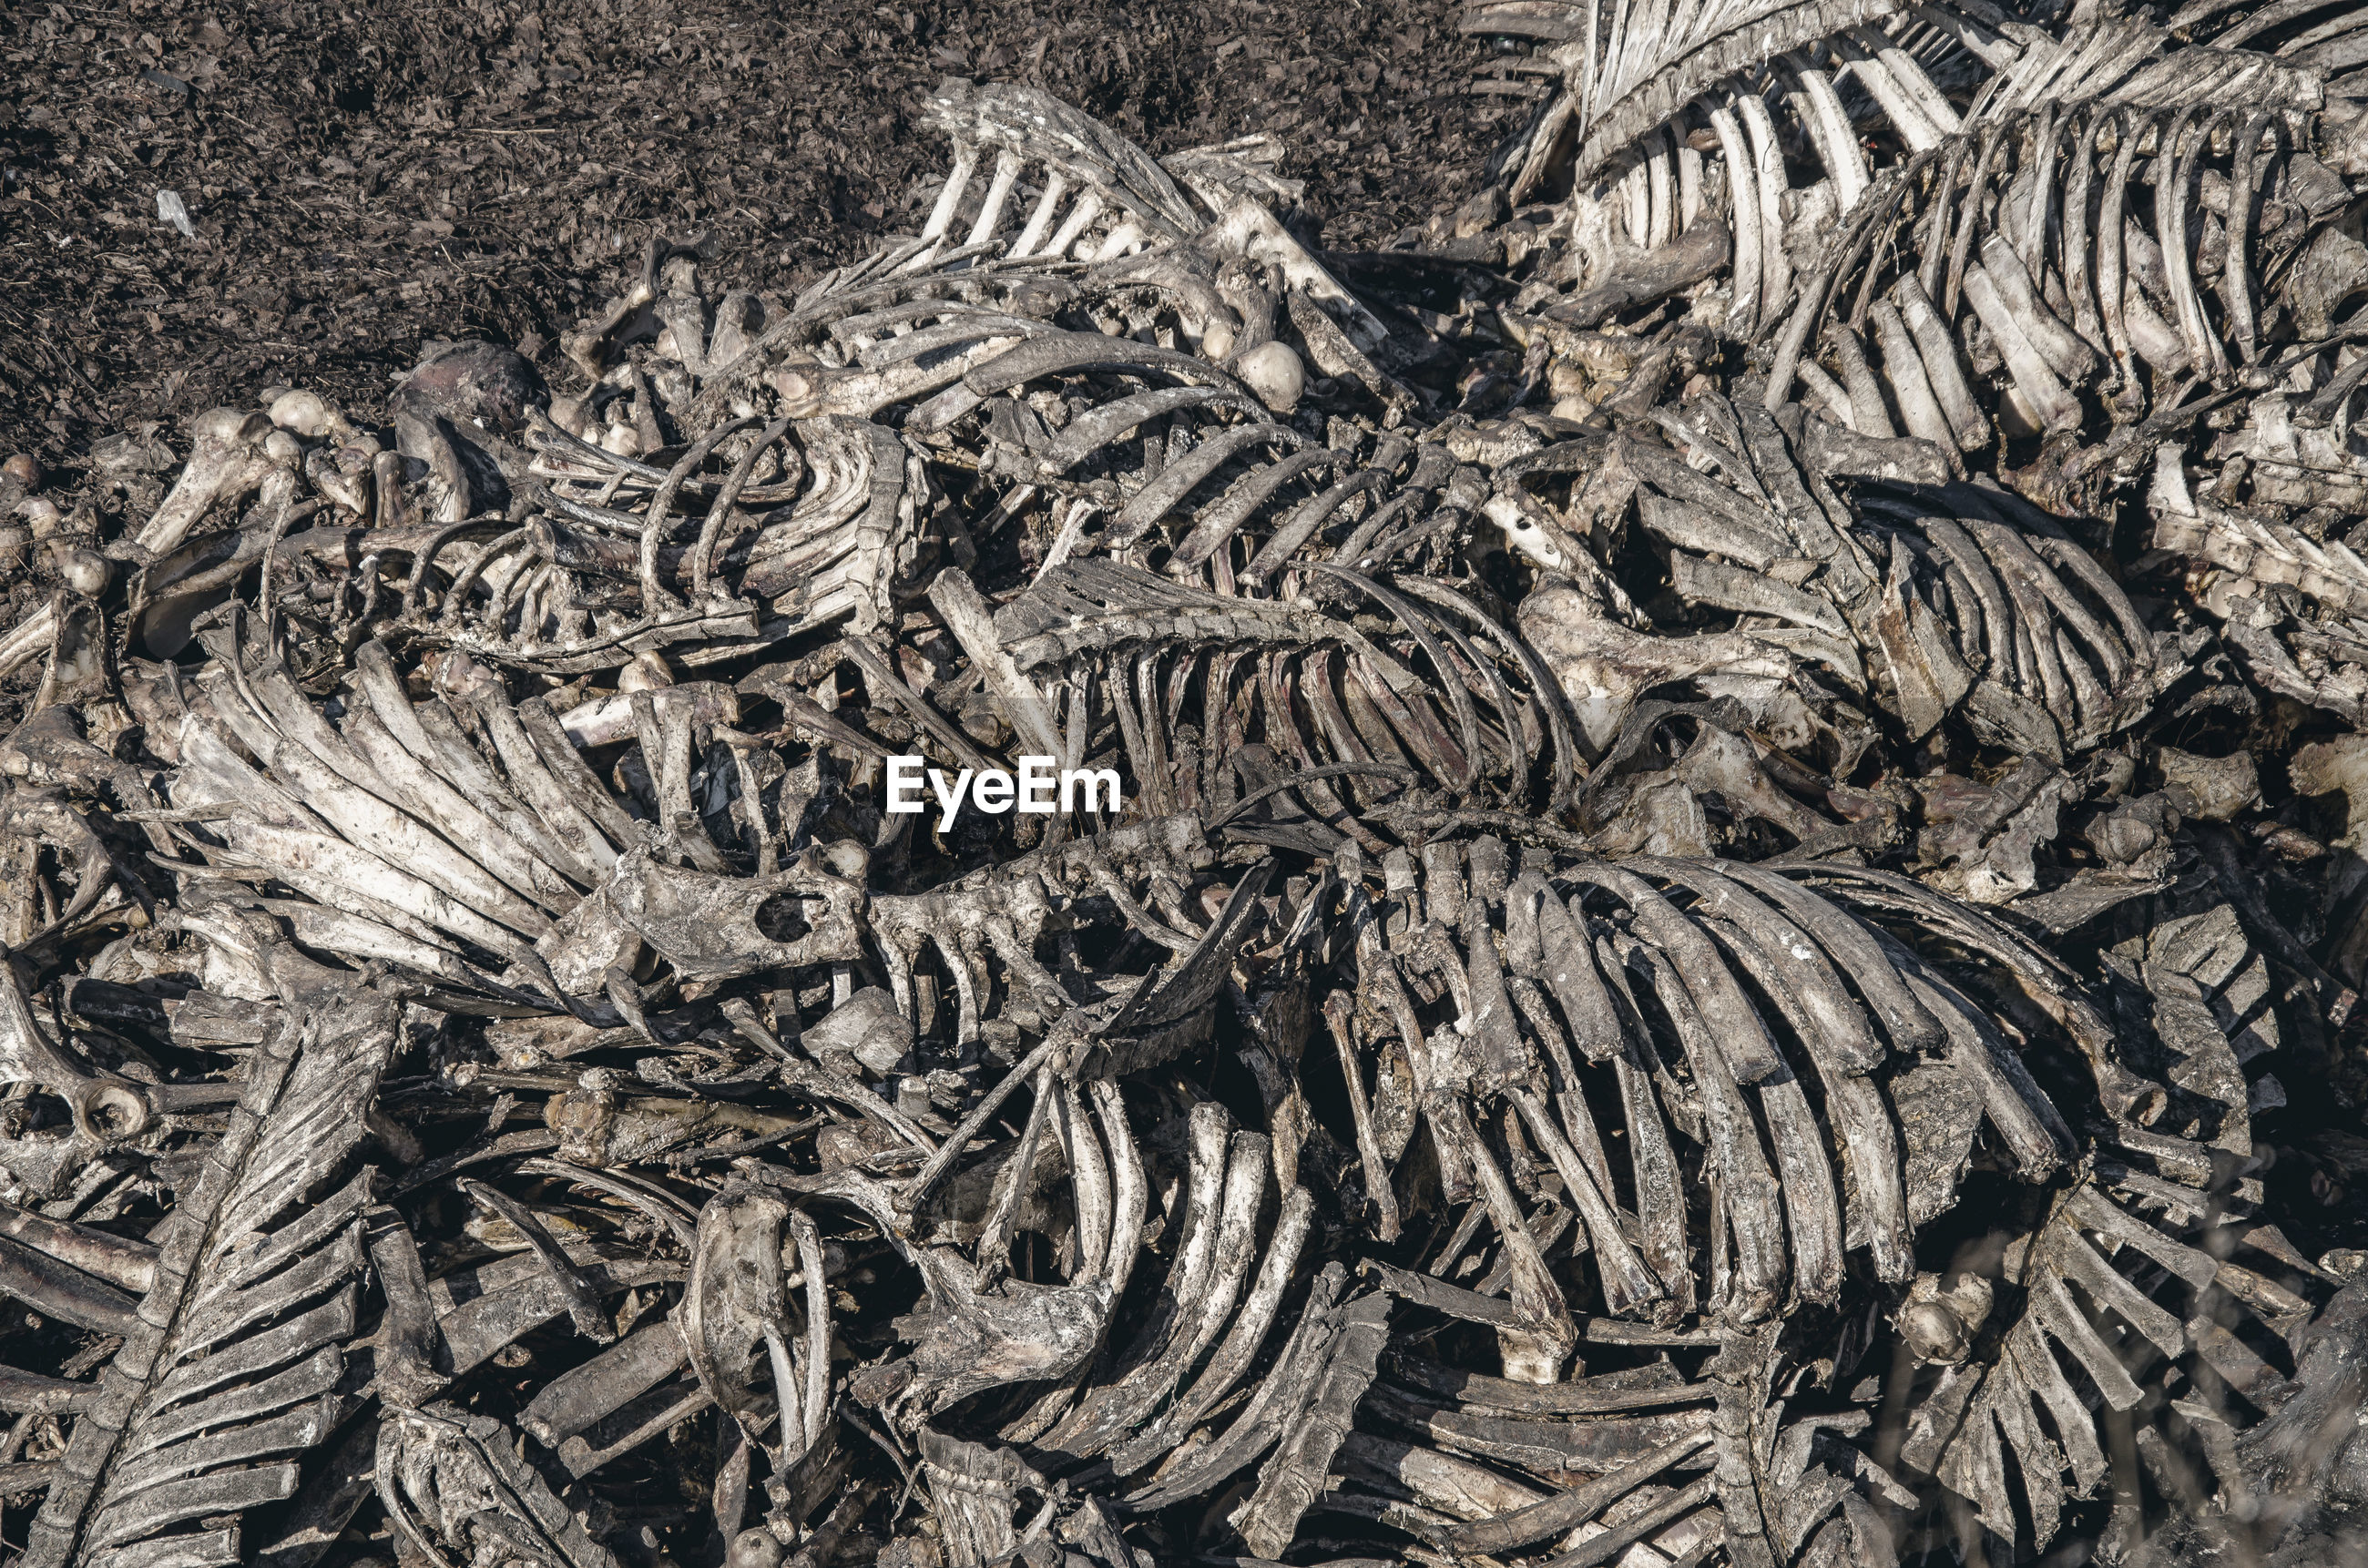 Bones of cows dumped in large pile at a landfill. disrespect, deadly business, eating meat